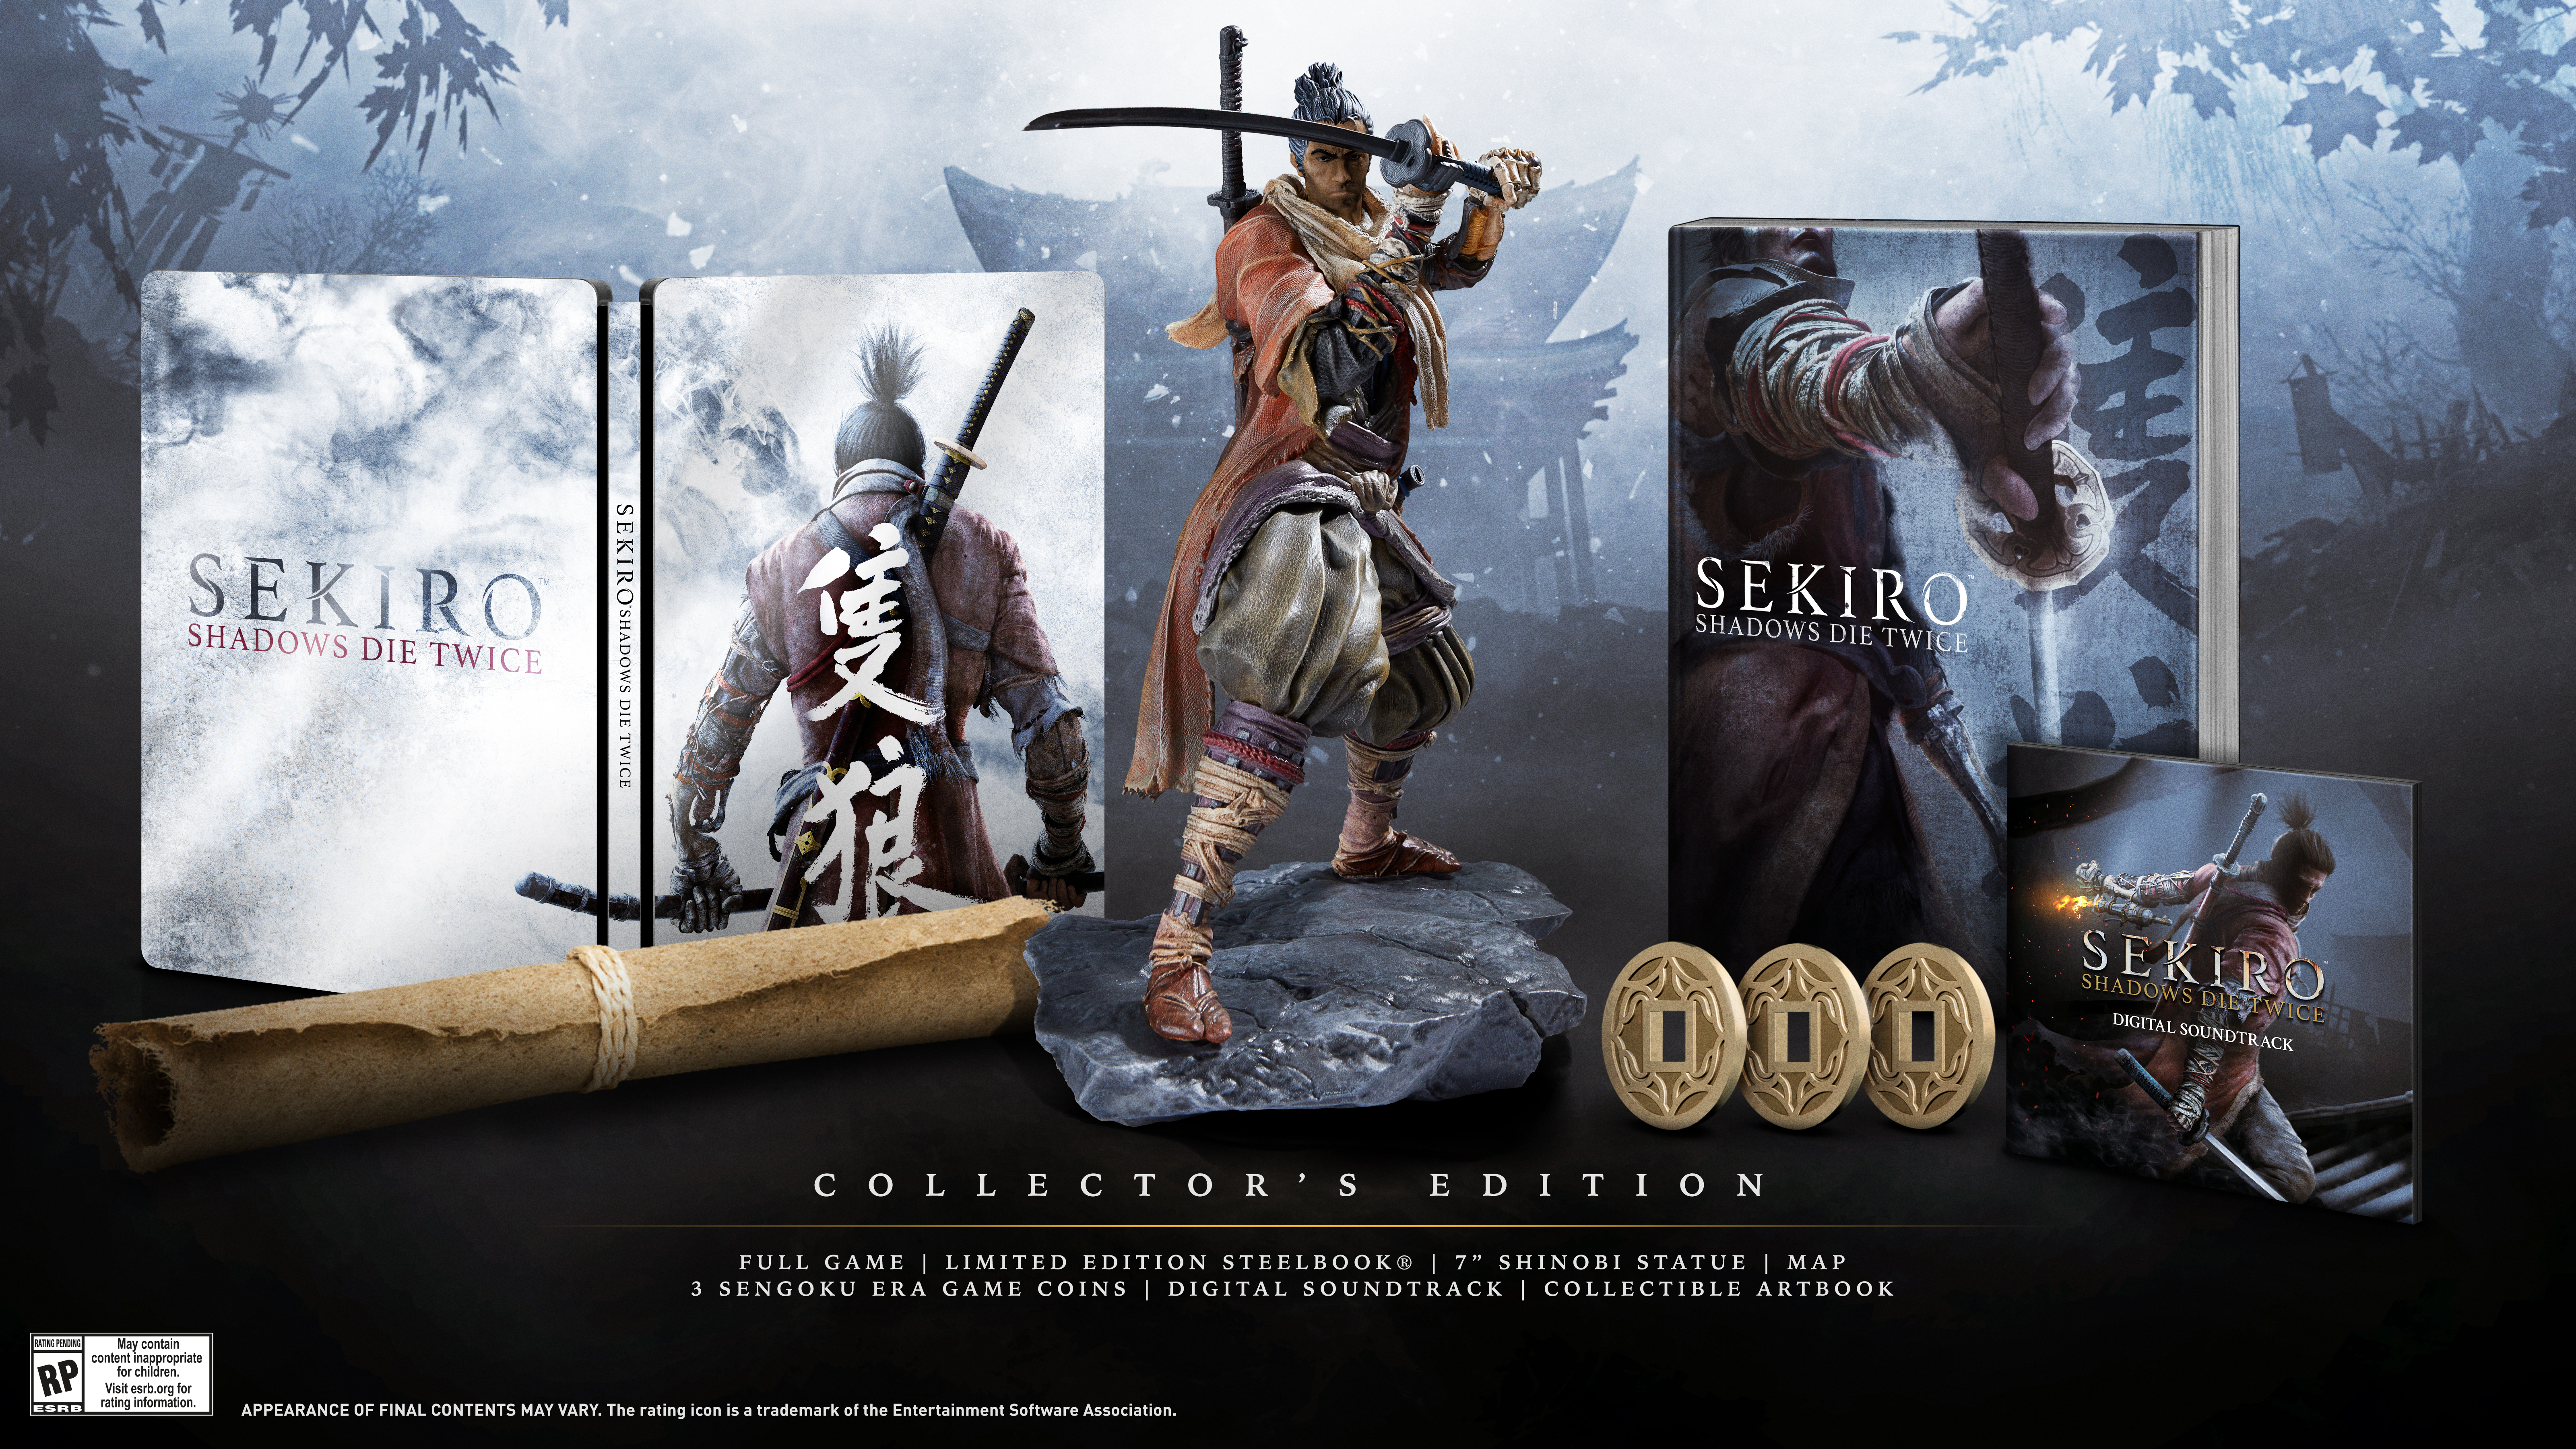 Activision Archives Skewed N Reviewed Funko Pop Games Destiny Sweeper Bot Sdcc The Sekiro Shadows Die Twice Collectors Edition Which Is Packed With Collectible Items